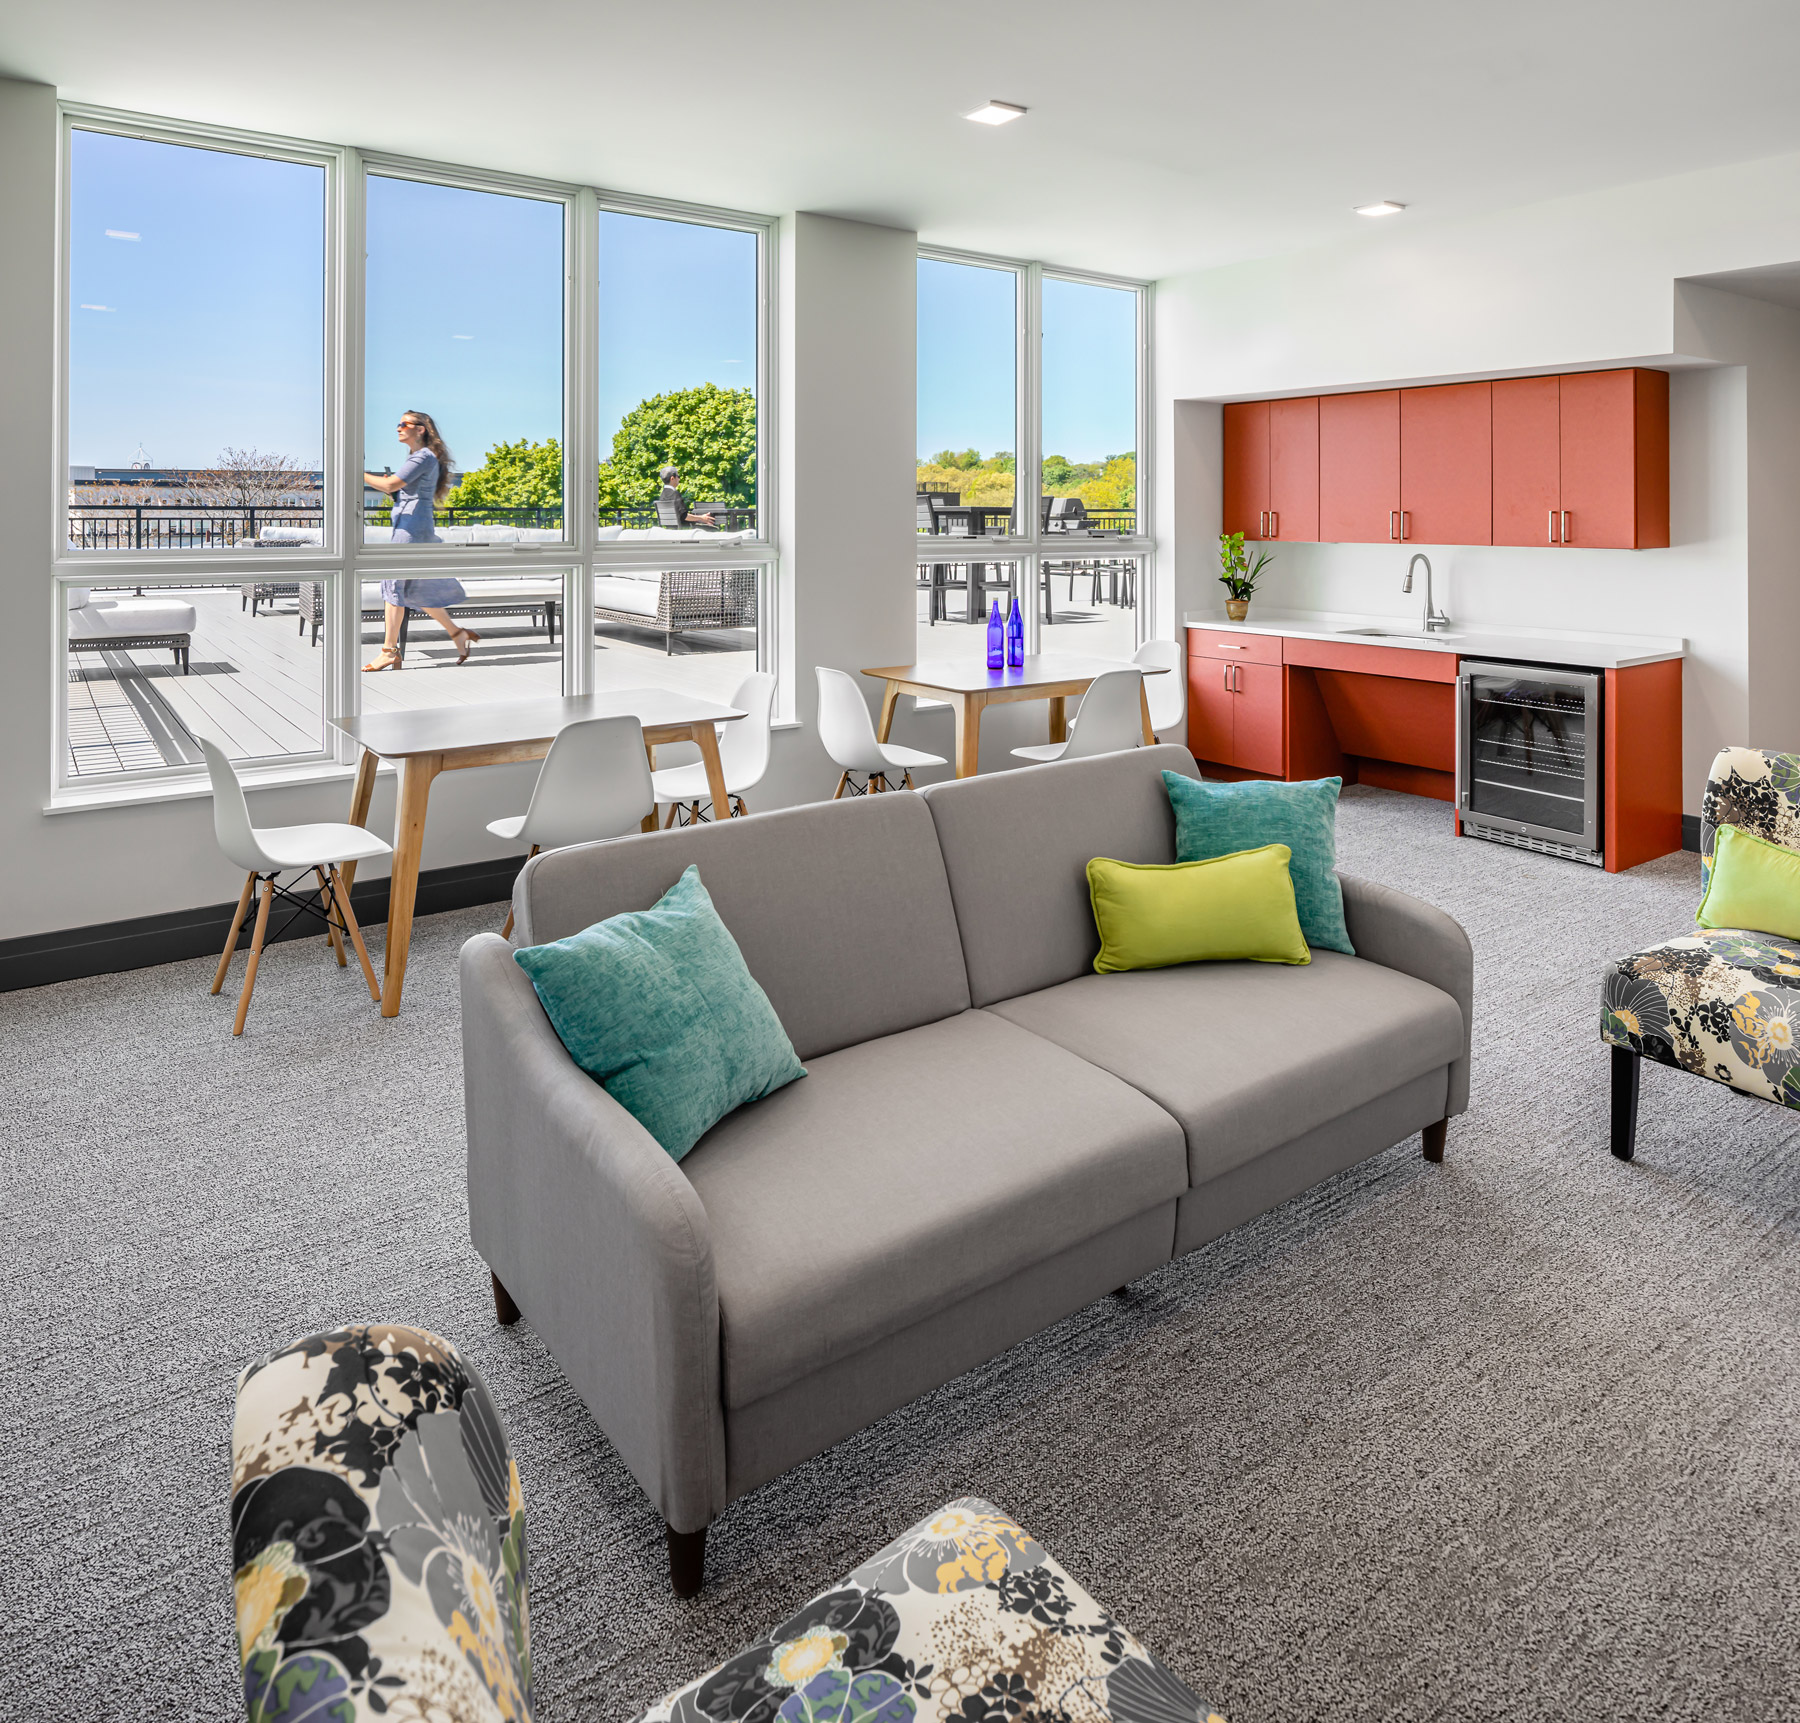 Indoor common space with lounge chairs, a couch, tables and modern chairs, and red cabinets to the right, with a view onto an outdoor roof deck.